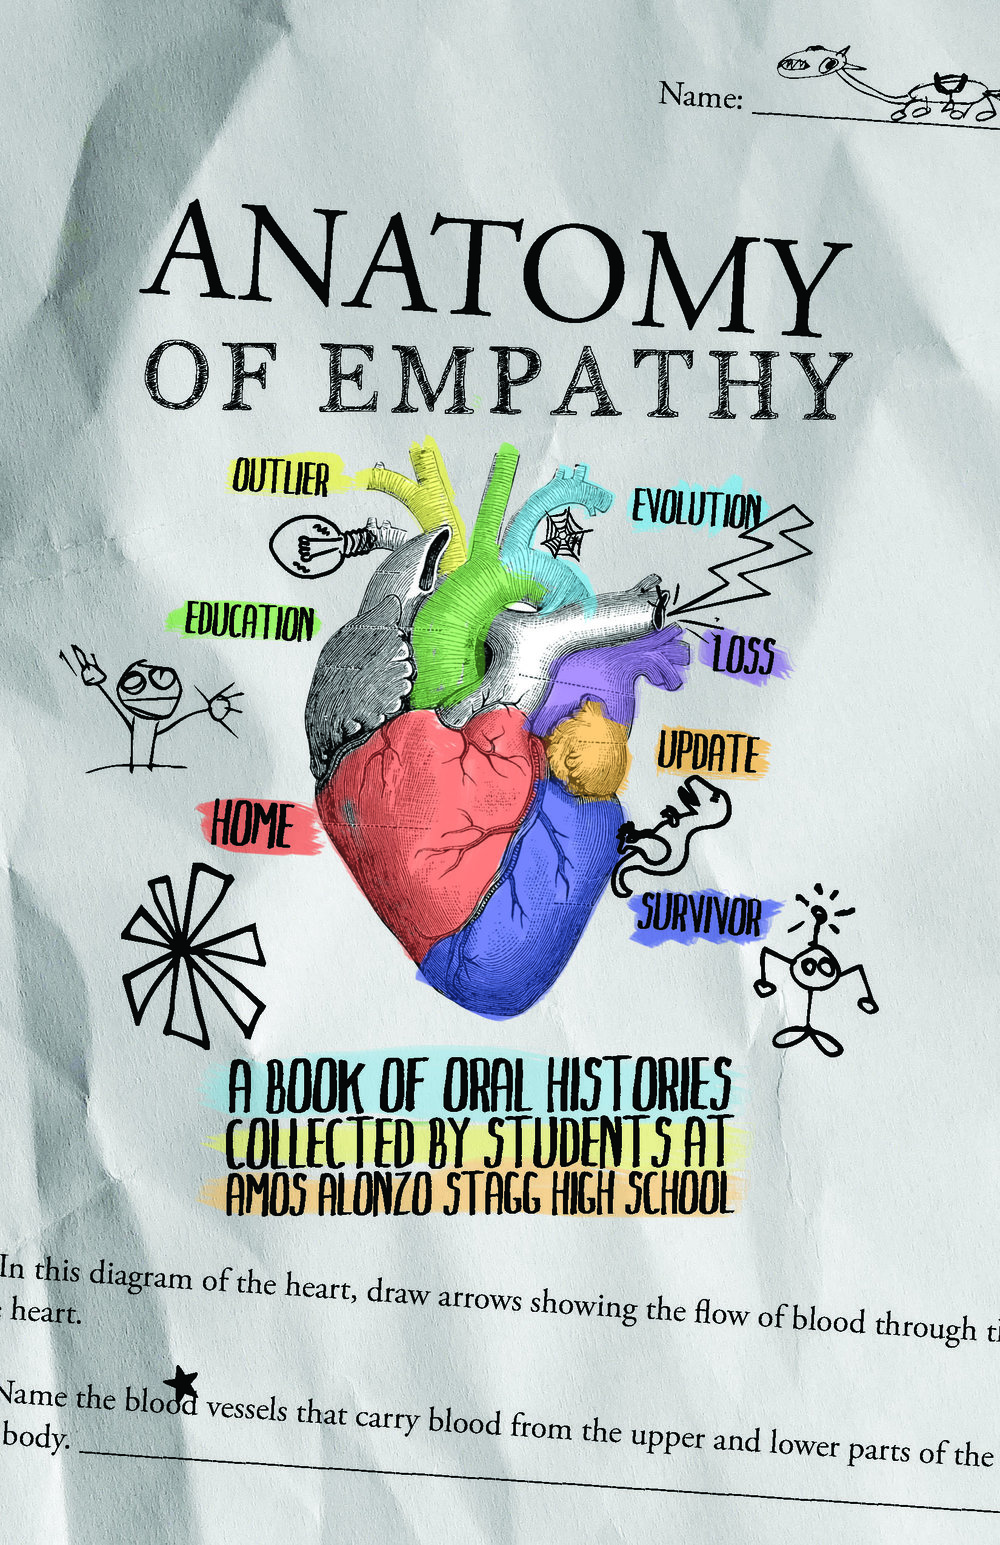 Anatomy of Empathy - VOW Class of 2017